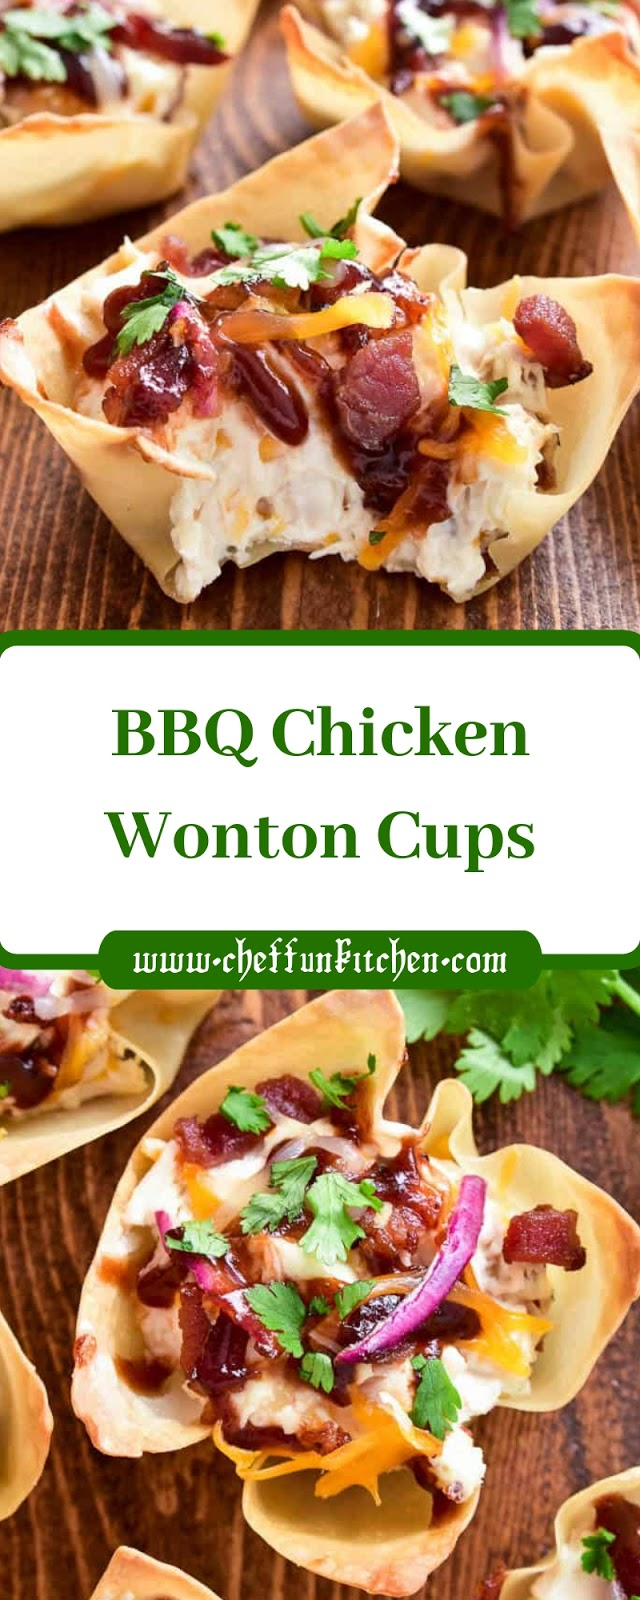 BBQ Chicken Wonton Cups